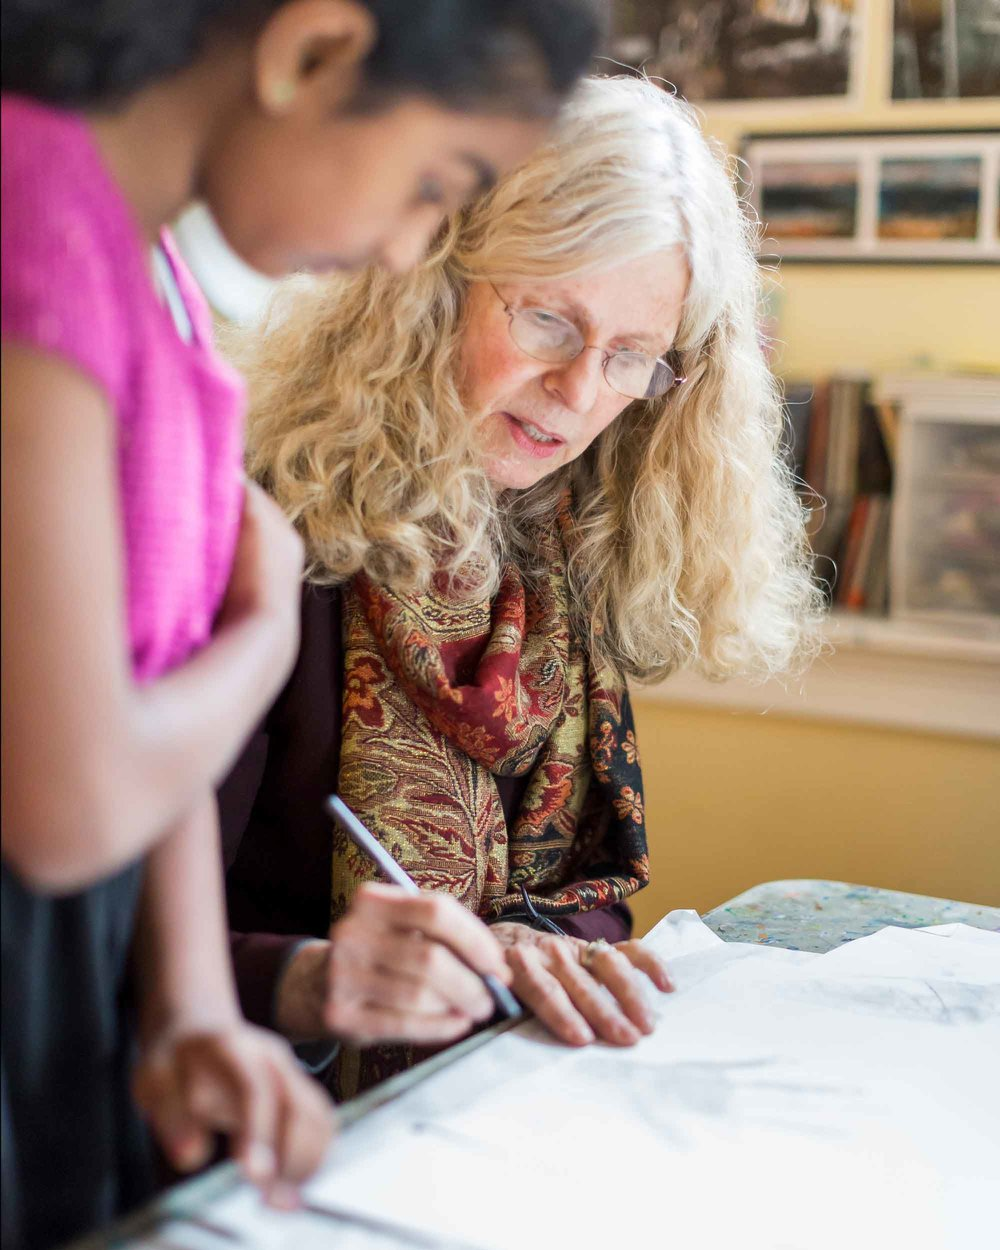 Classes - Join Mickey Waring for a dynamic exploration of creativity in a supportive and nurturing environment. Collage, watercolor, drawing, nature journaling, bookmaking, poetry and more. All ages welcome!Learn More